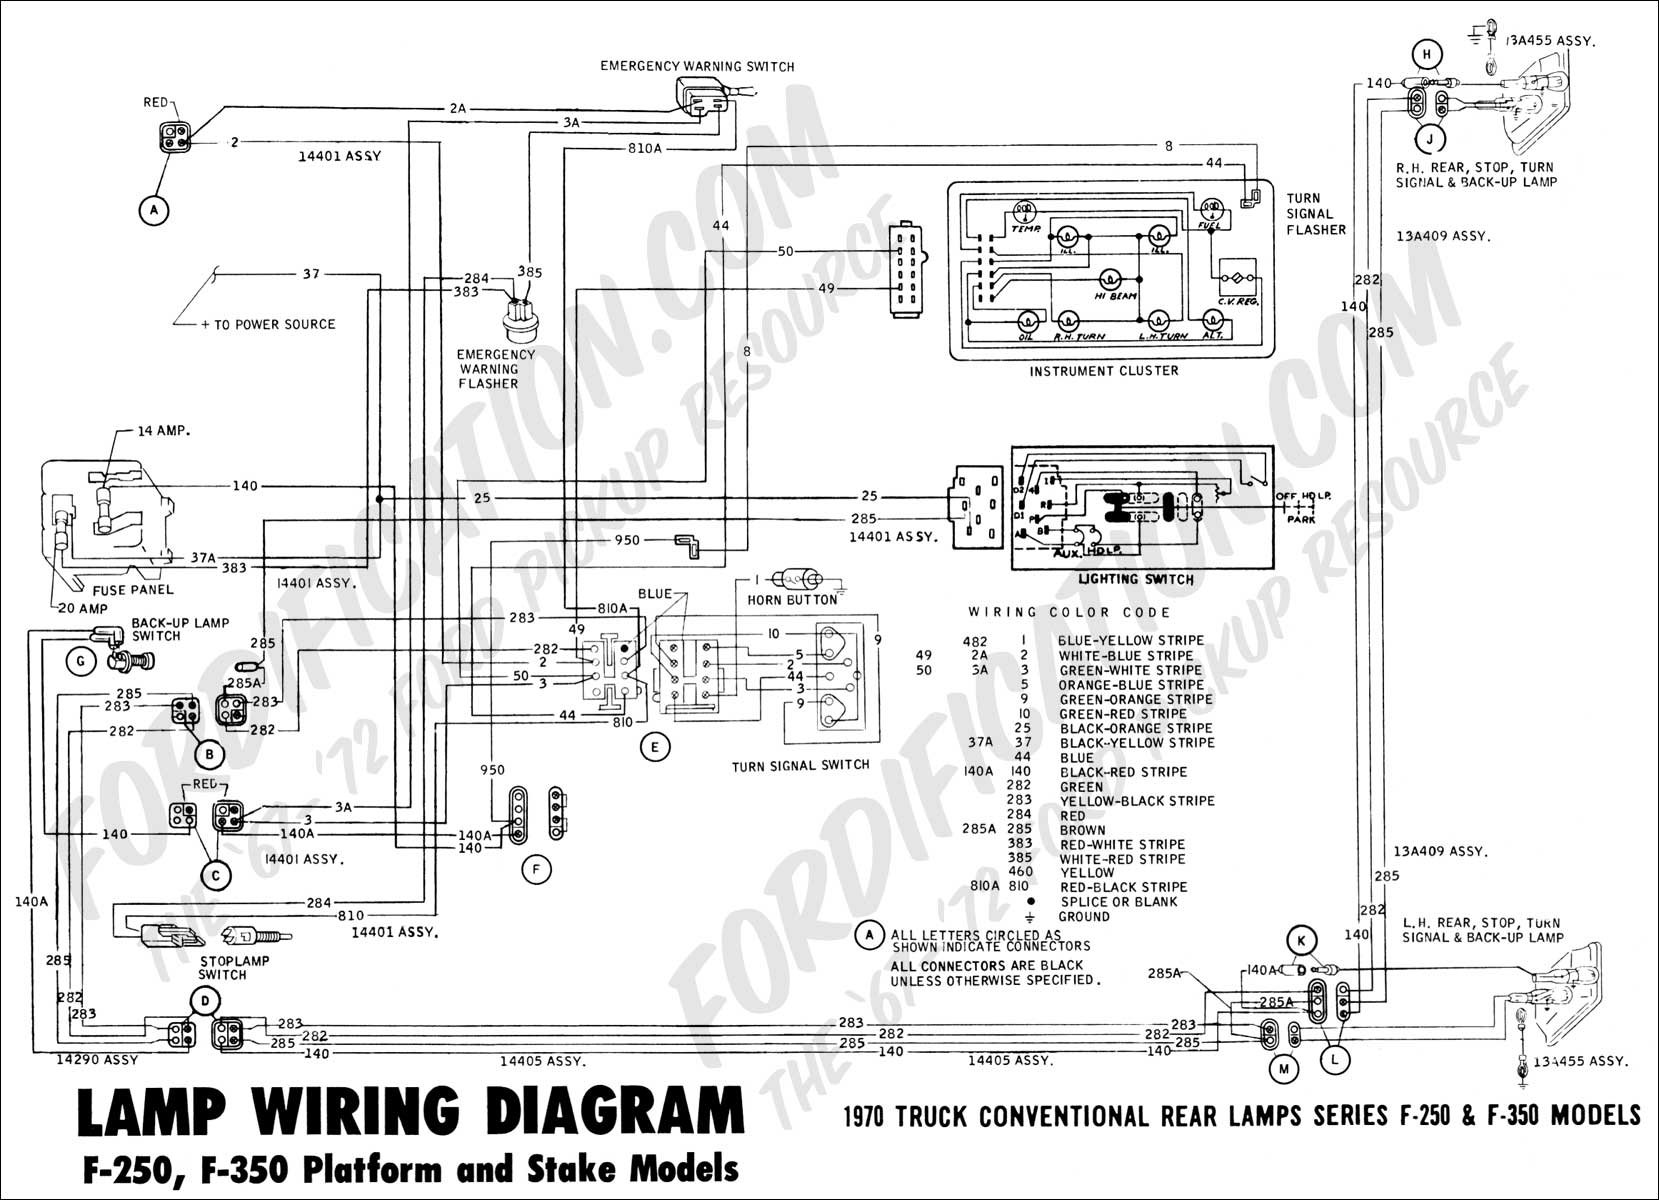 Bmw 2002 Dimmer Switch Wiring Diagram from www.fordification.com